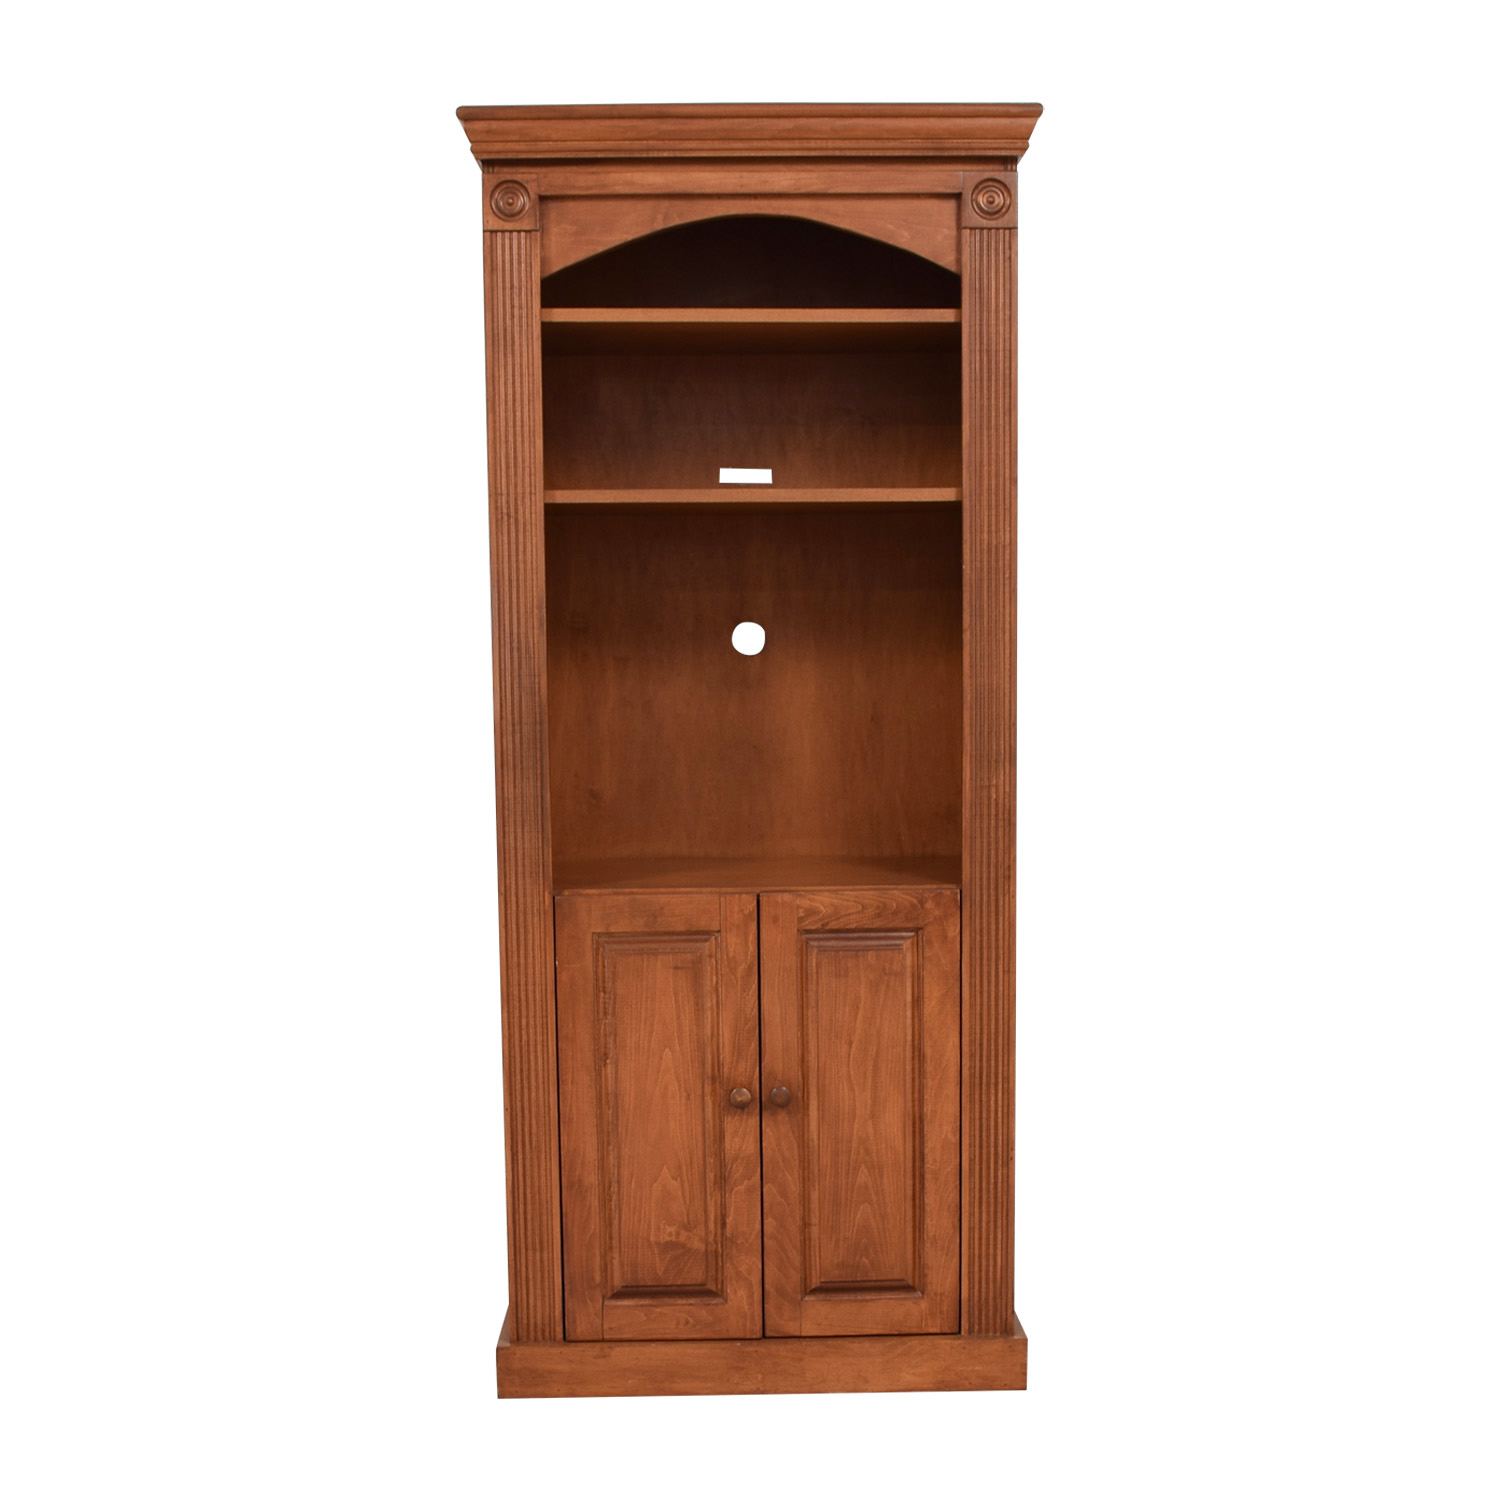 Gothic Cabinet Craft Custom Wood Bookshelf With Storage